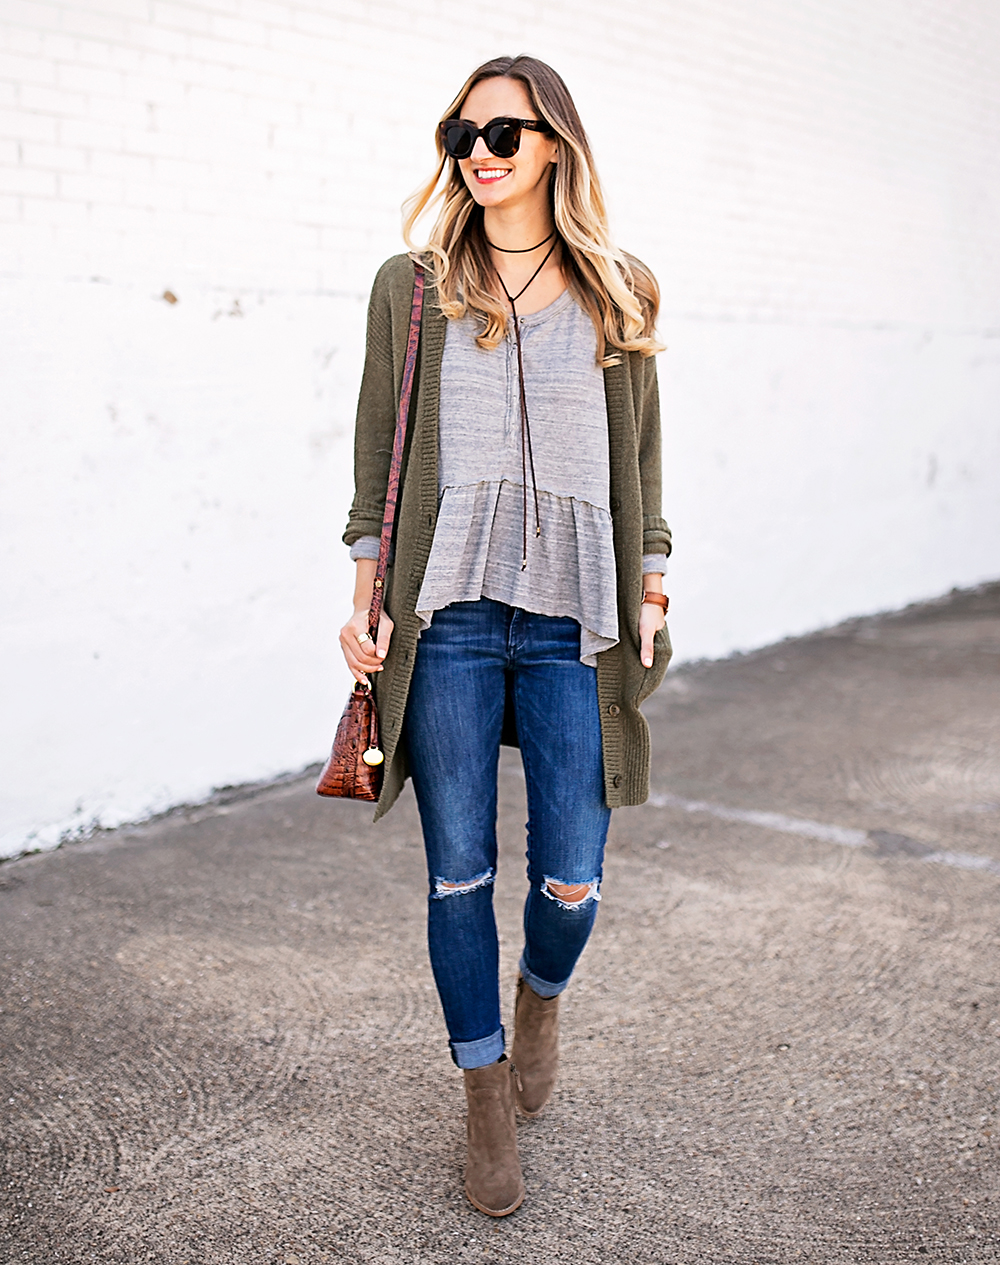 livvyland-blog-olivia-watson-peplum-thermal-tee-shirt-olive-cardigan-boho-outfit-casual-taupe-ankle-booties-fall-outfit-idea-celine-baby-marta-sunglasses-5